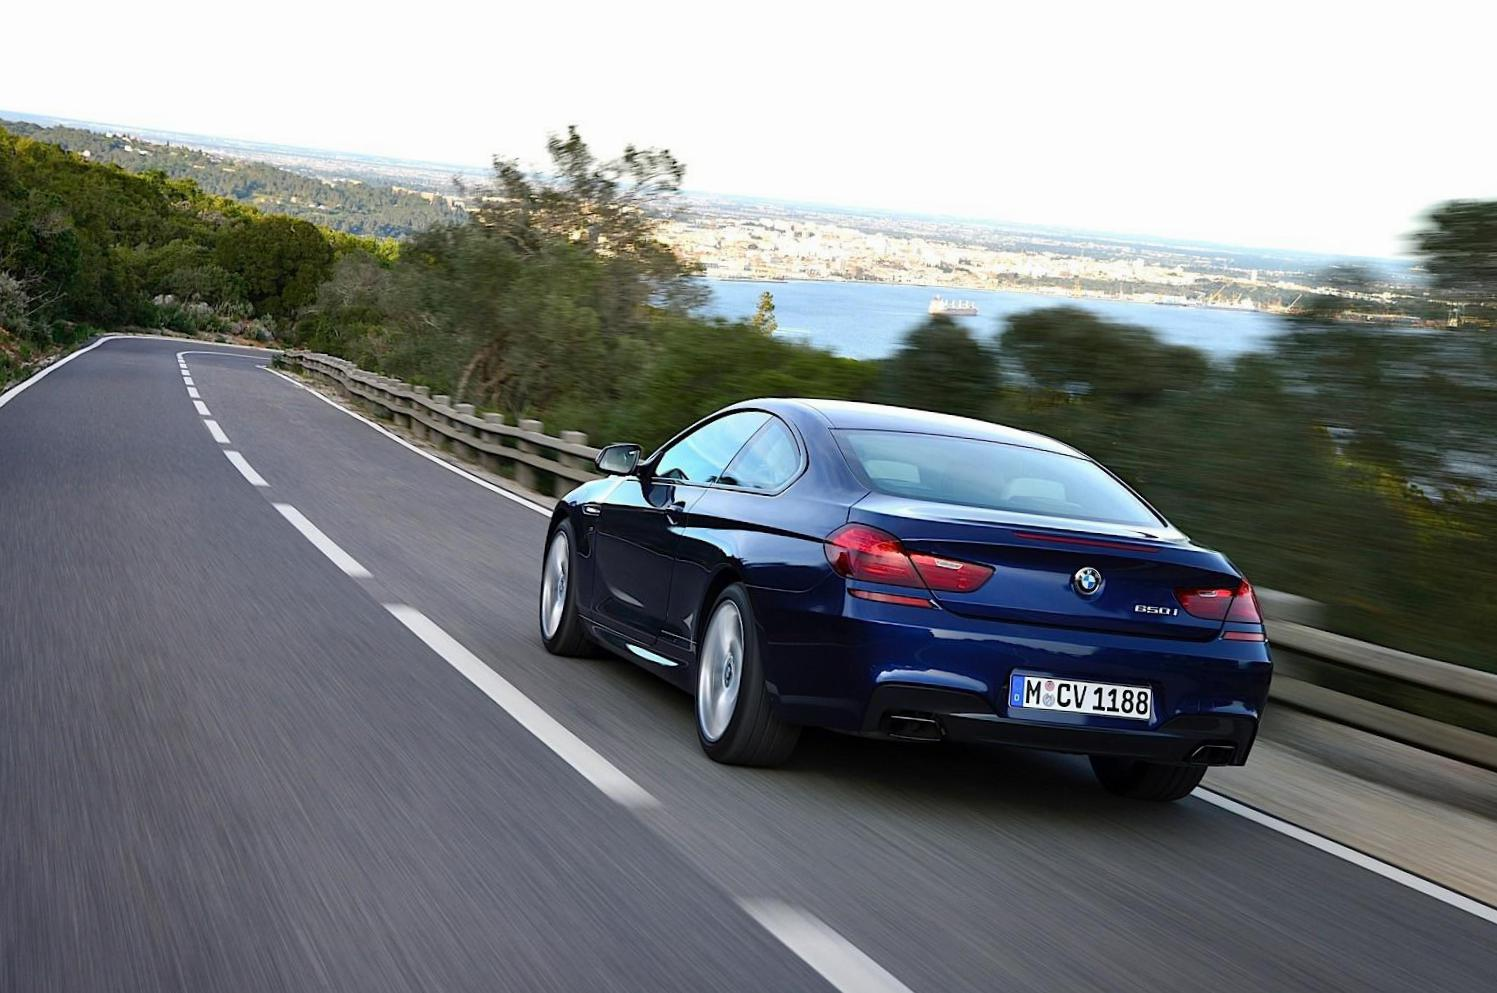 BMW 6 Series Coupe (F13) price coupe